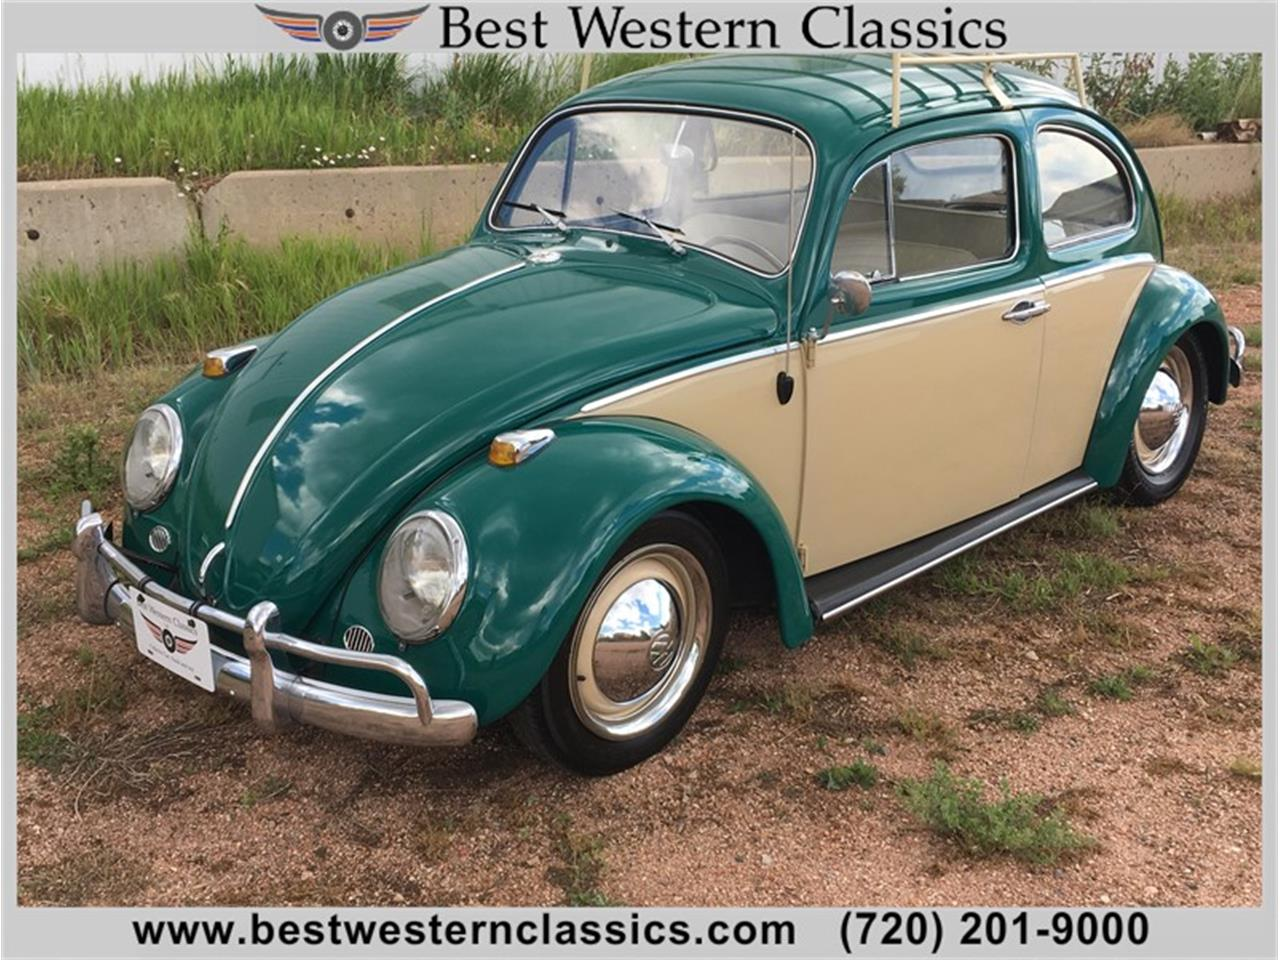 1964 Volkswagen Beetle for sale in Franktown, CO